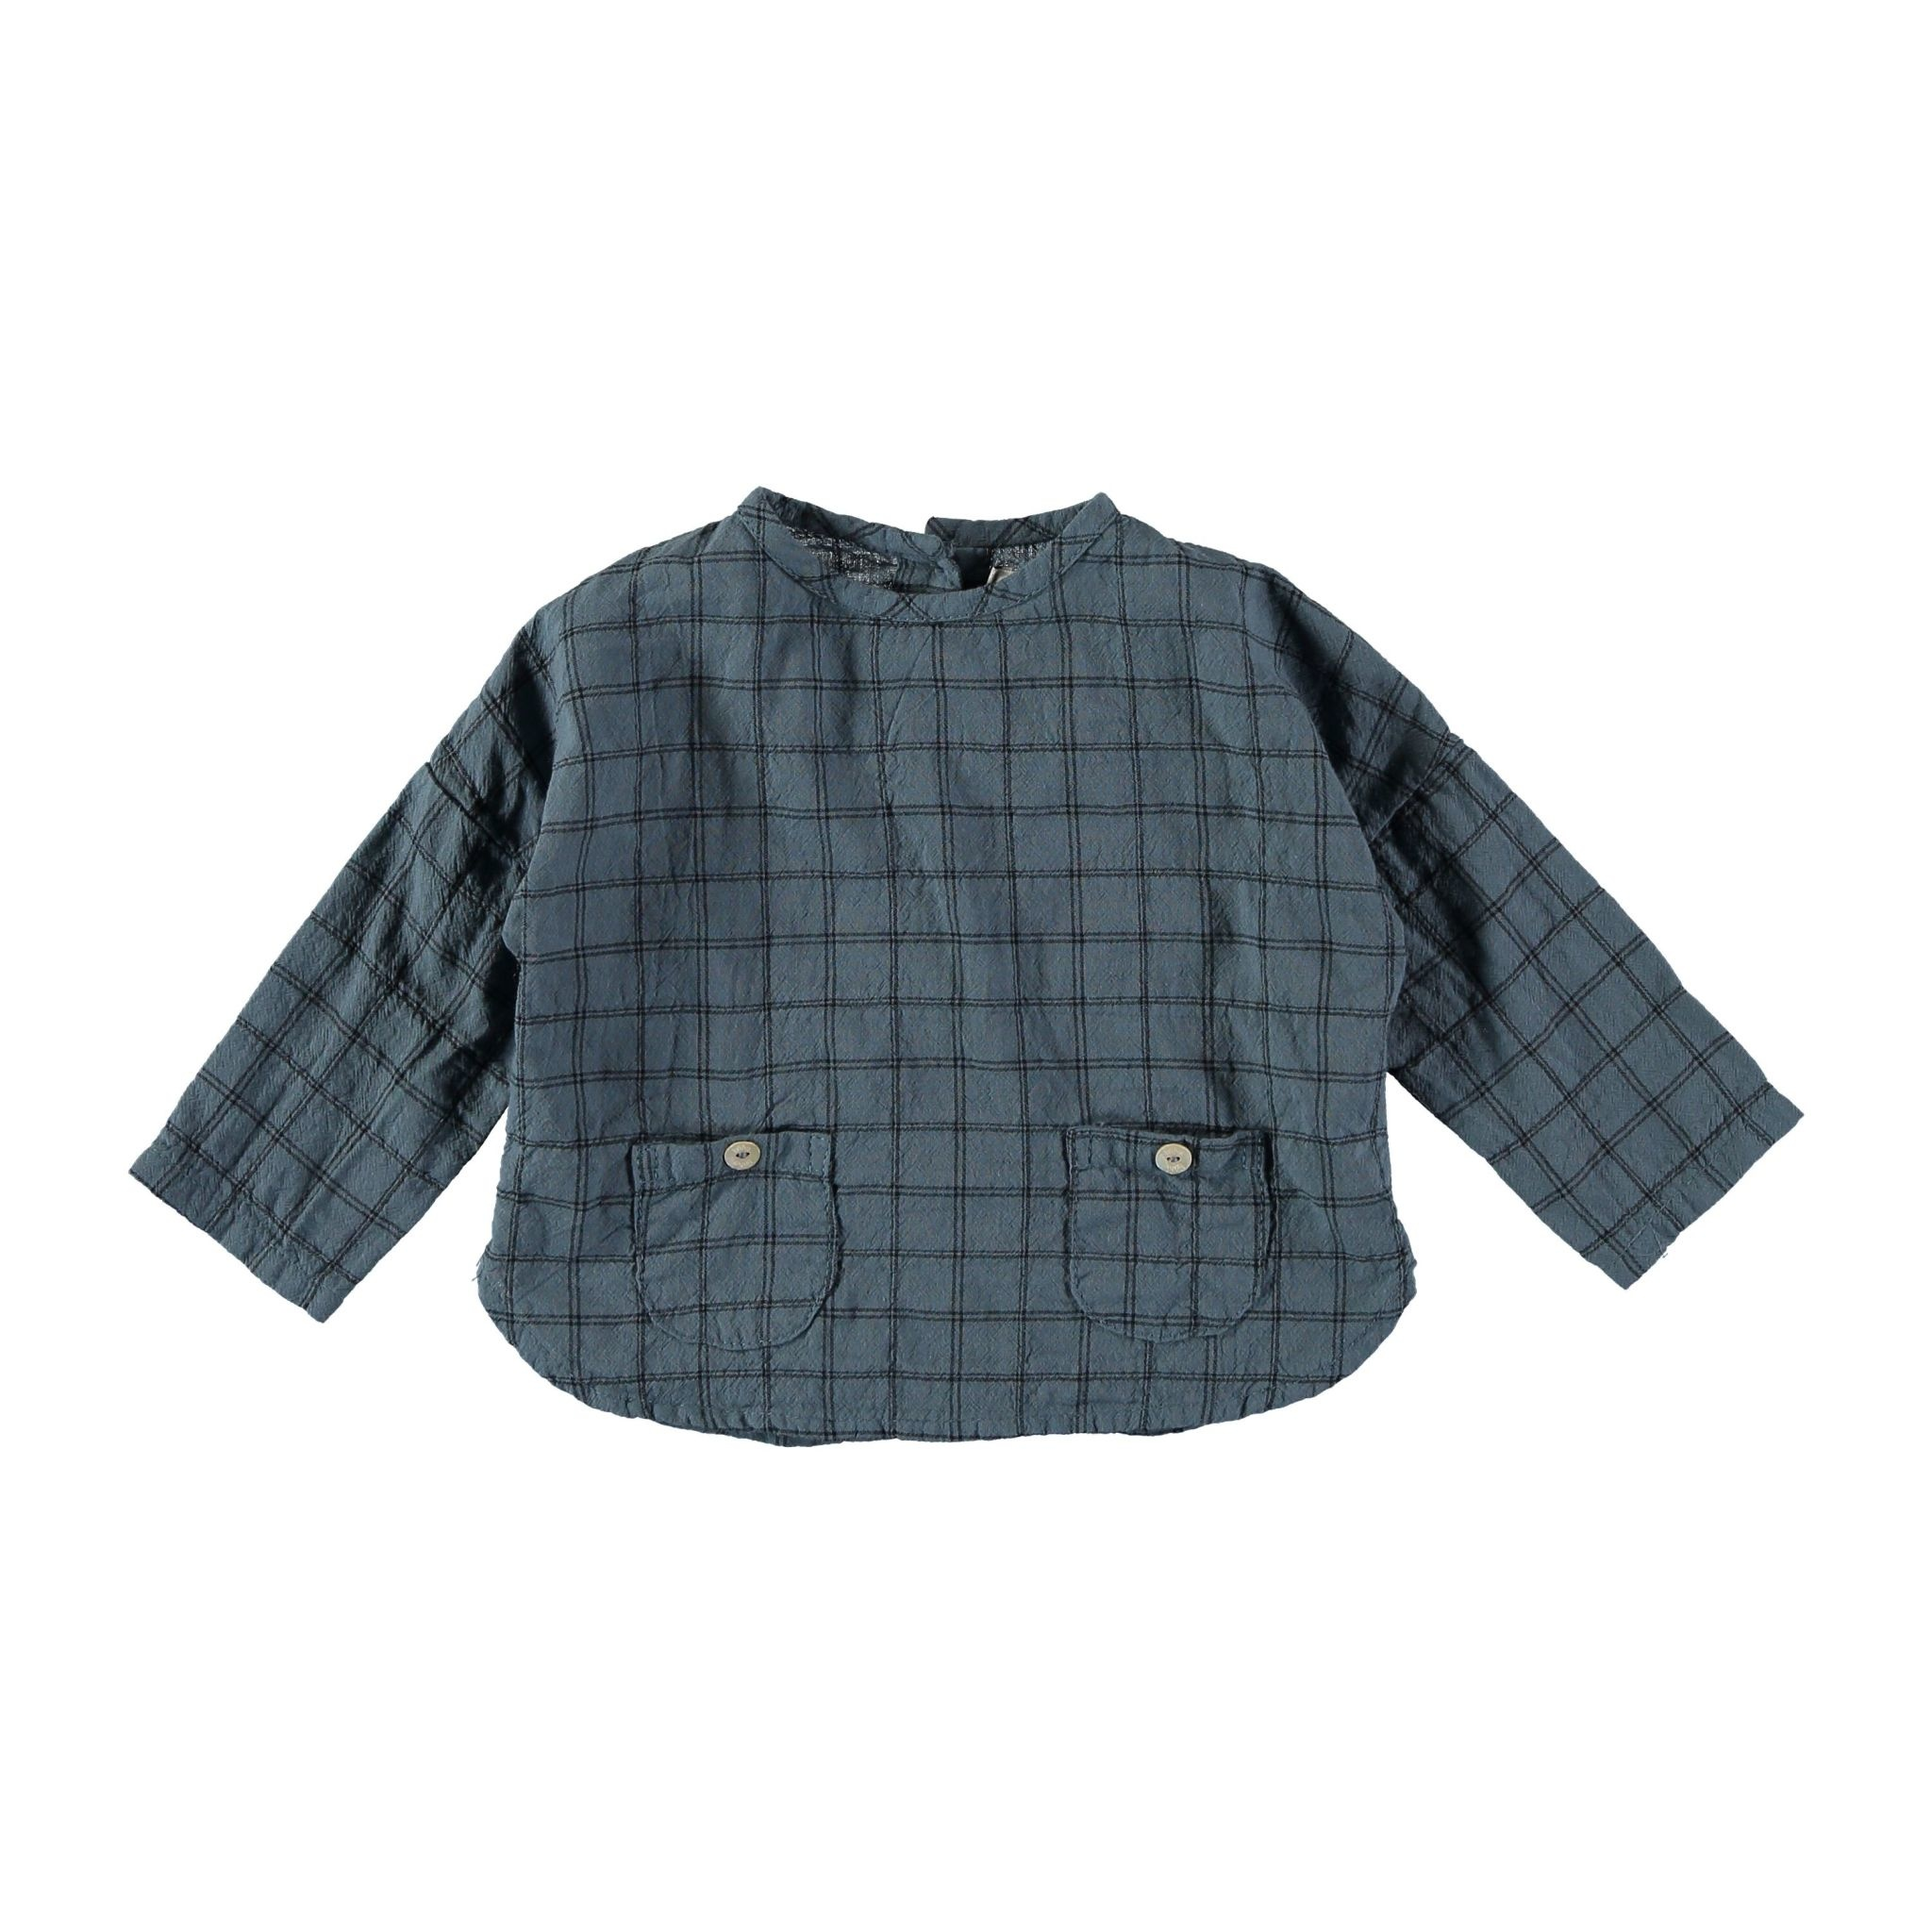 BUHO Mateo Check Pockets Shirt